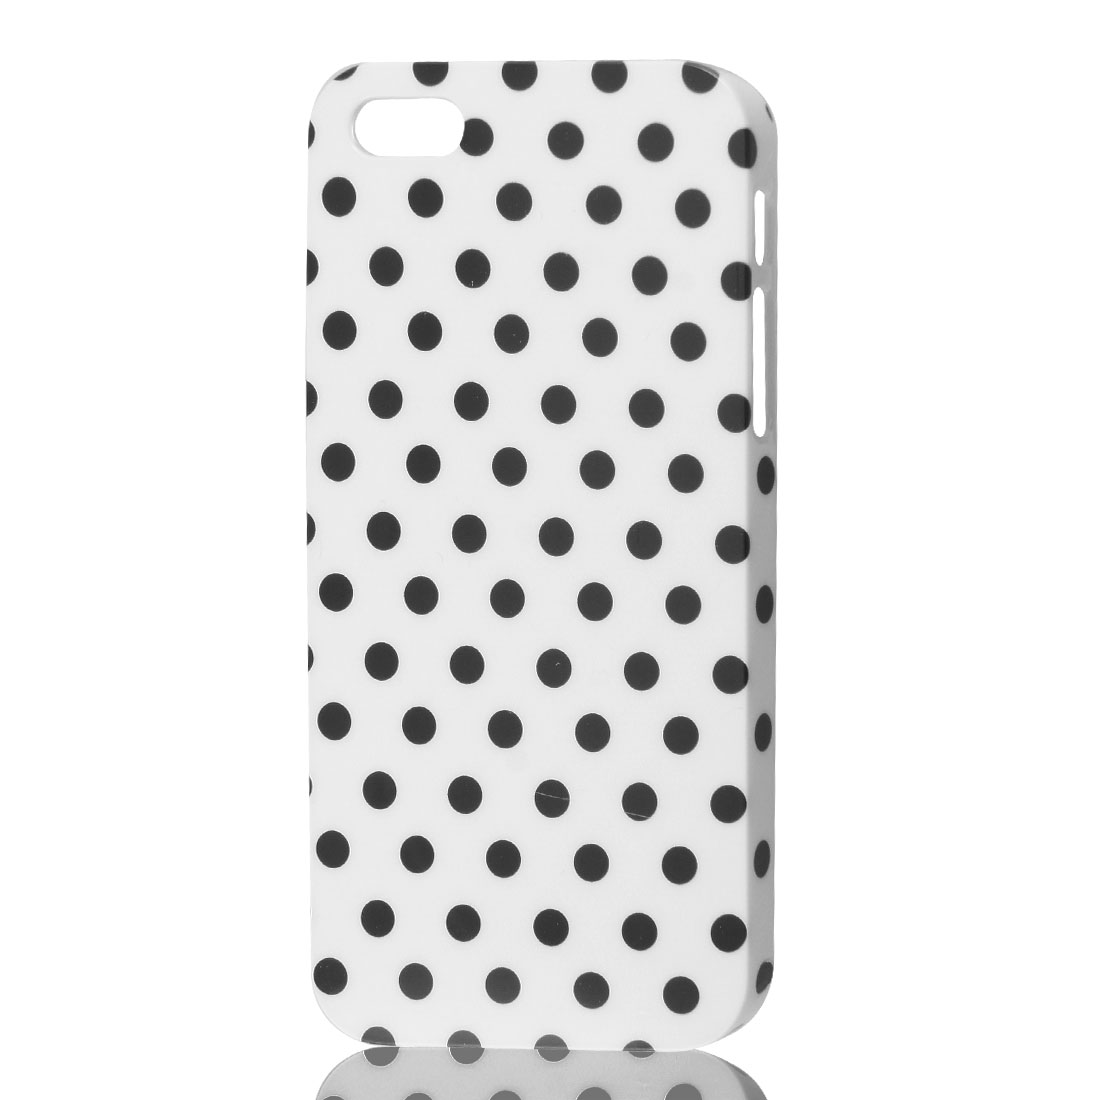 White Dot Pattern IMD Hard Back Cover Protective Case Skin for Apple iPhone 5 5G